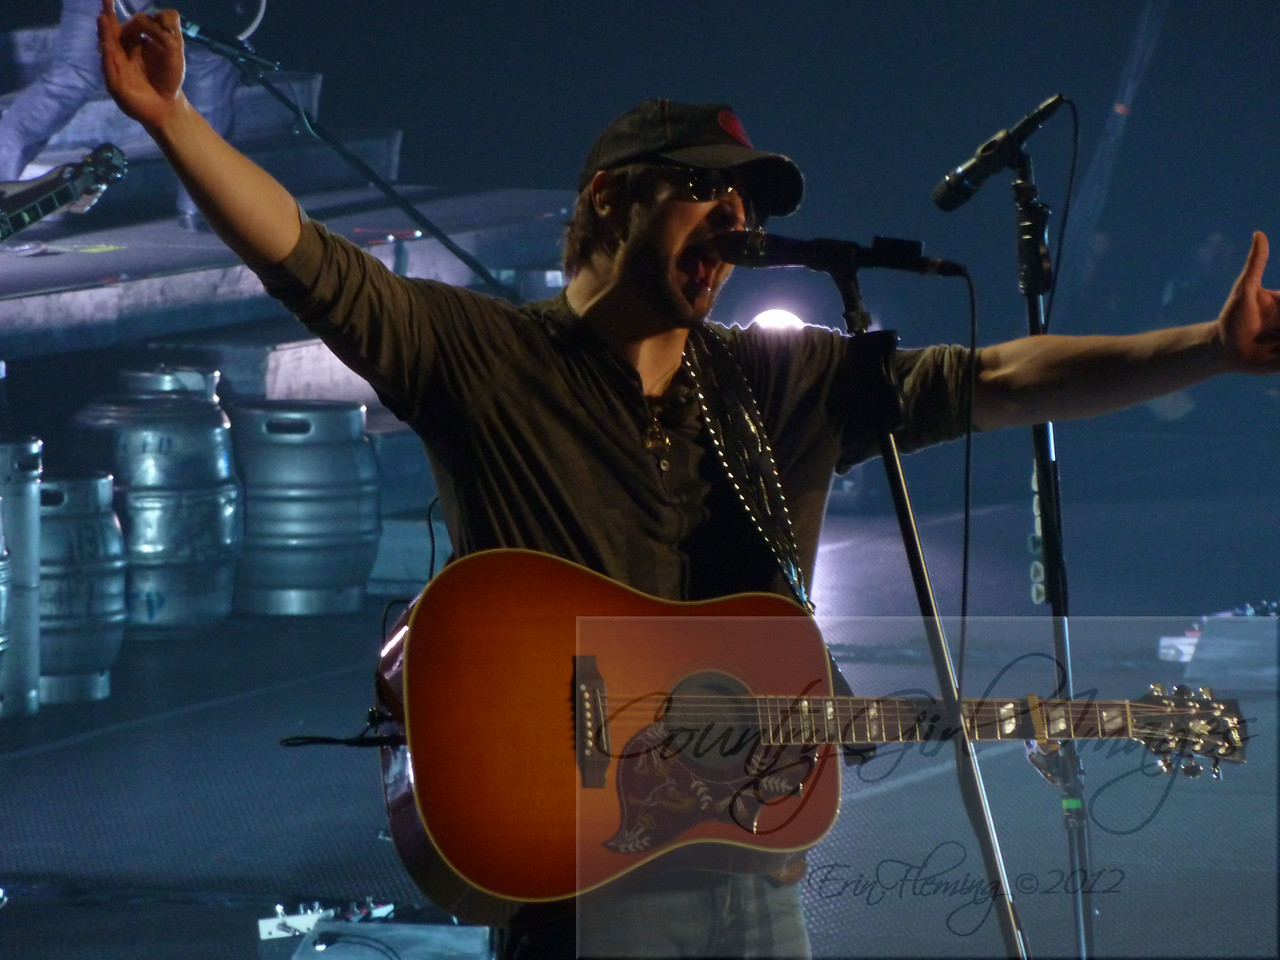 Eric Church w/Brantley Gilbert ~  'Blood, Sweat & Beers' tour stops in Hoffman Estates, IL